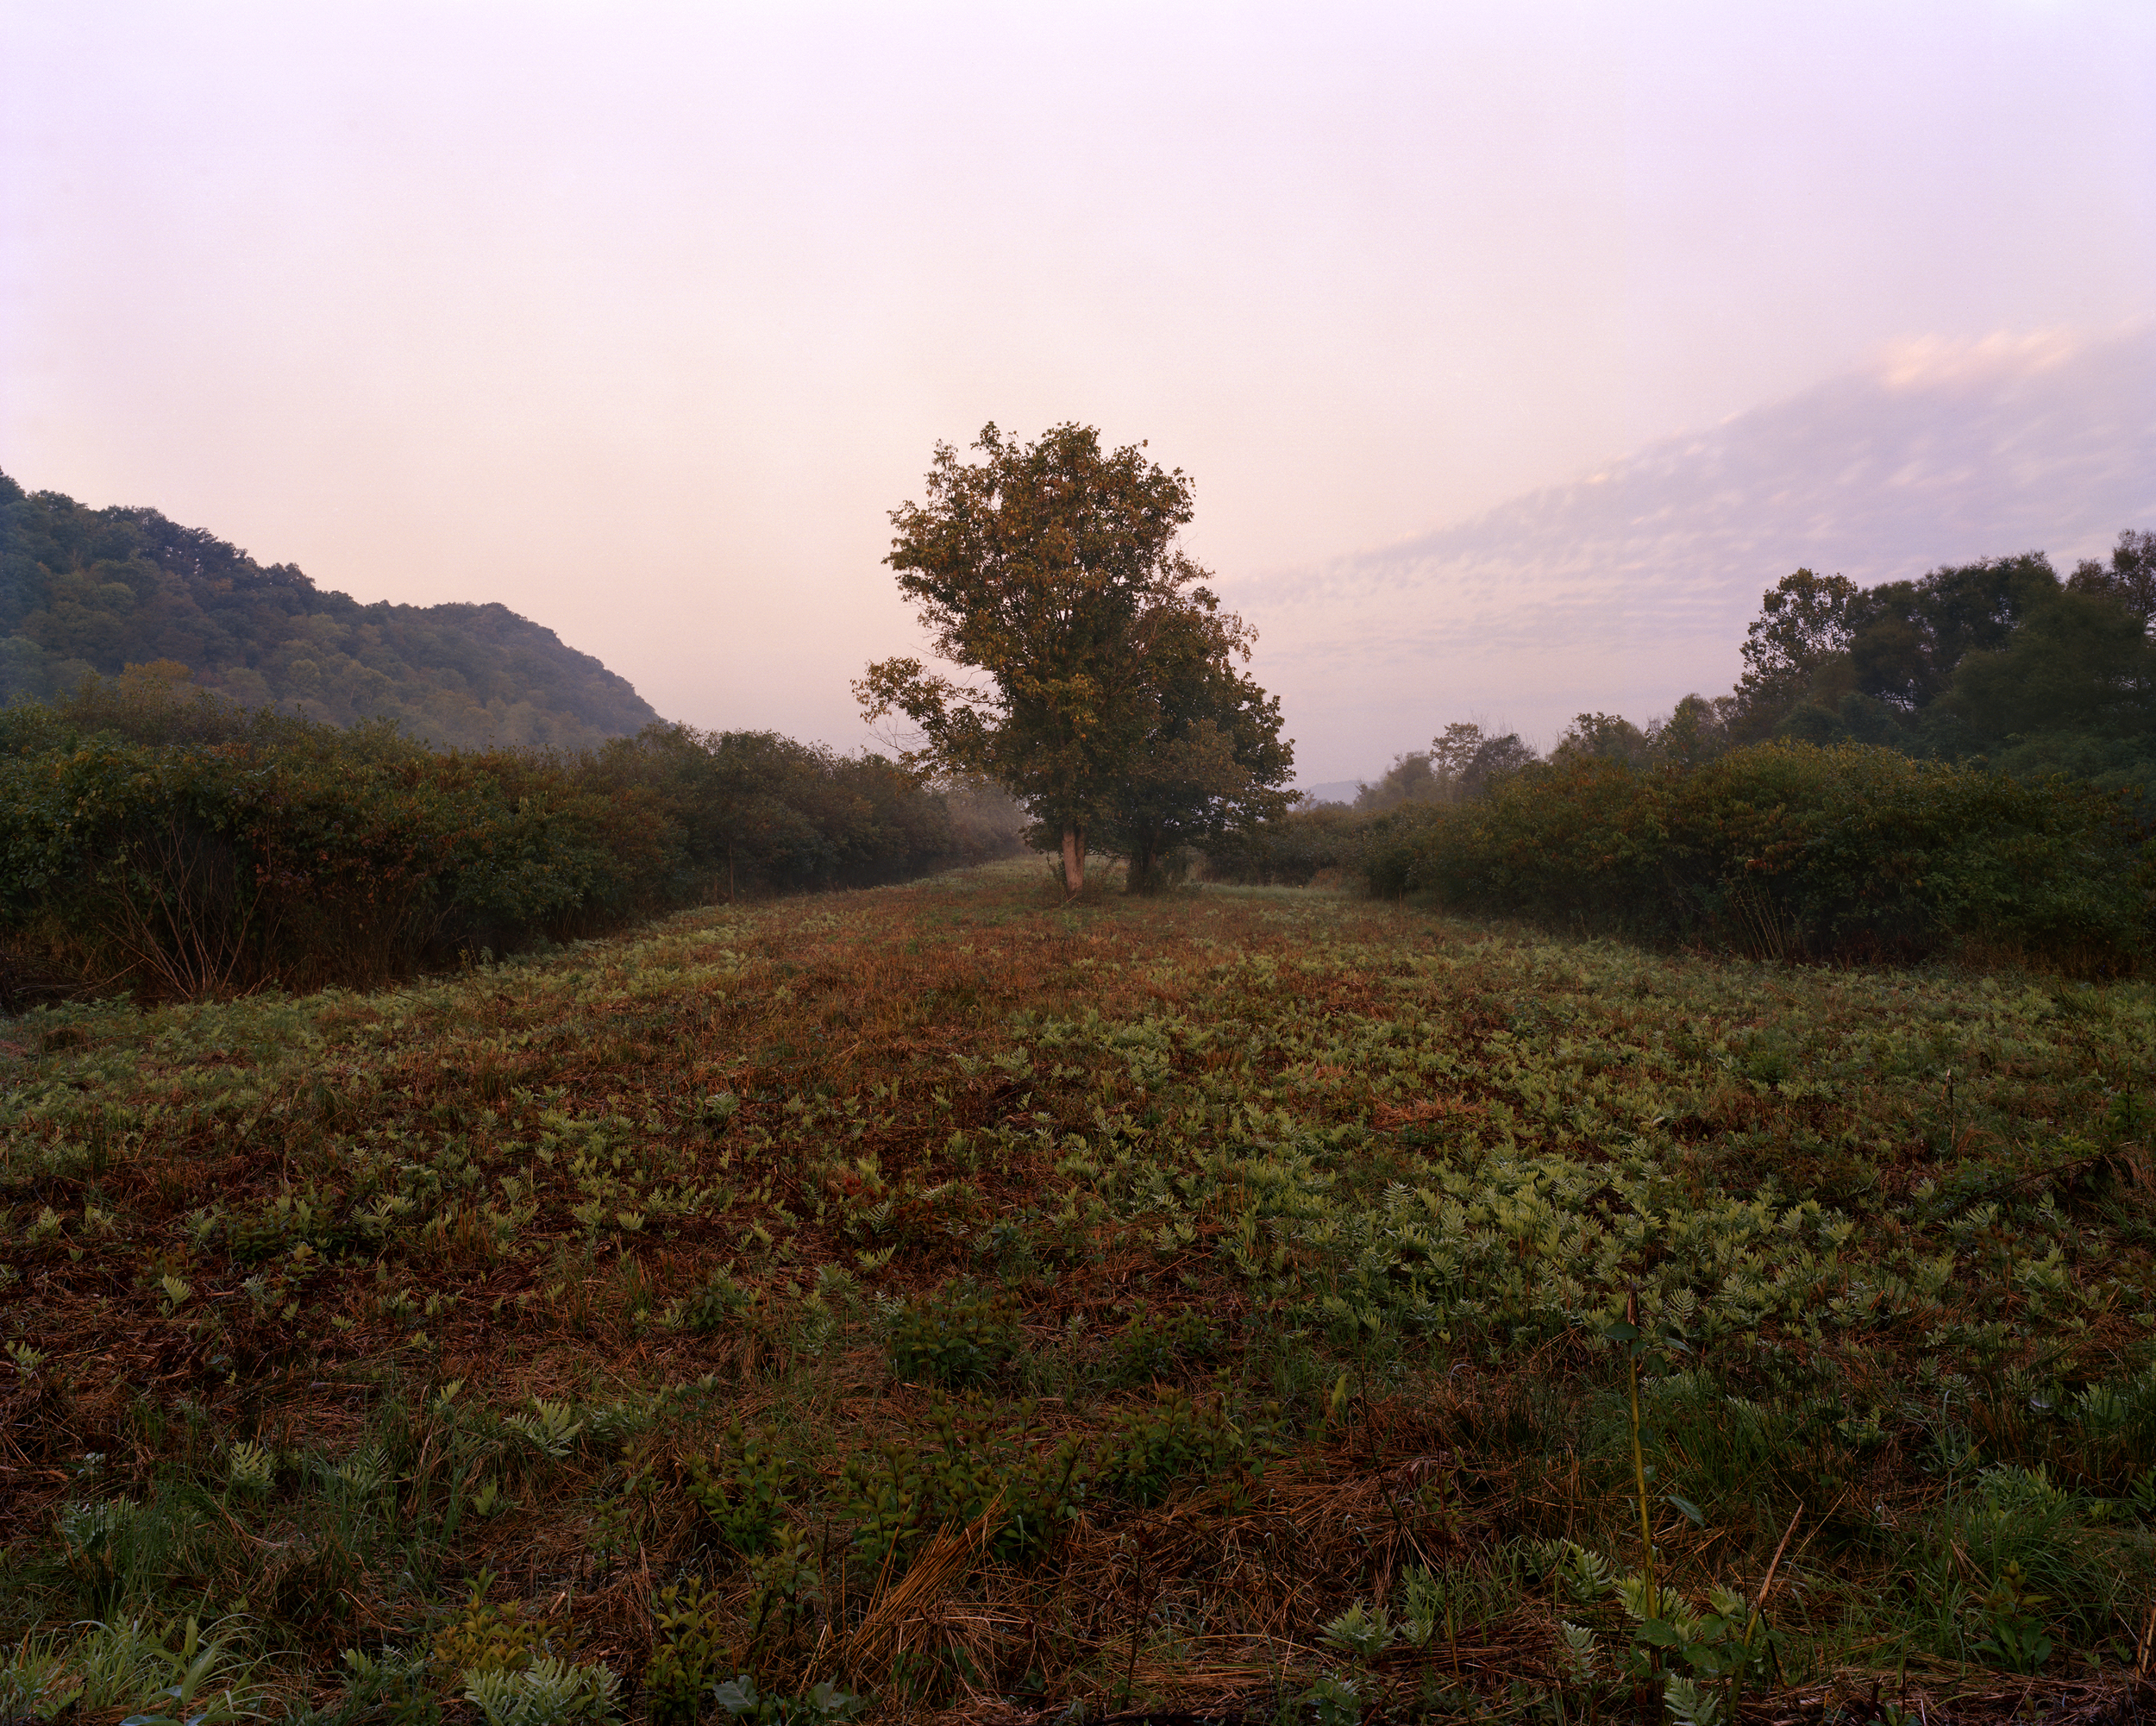 Cleared Meadow, Greenbottom Wildlife Management Area, WV, 2011  6 x 9, signed and numbered edition of 5 Archival inkjet print $95